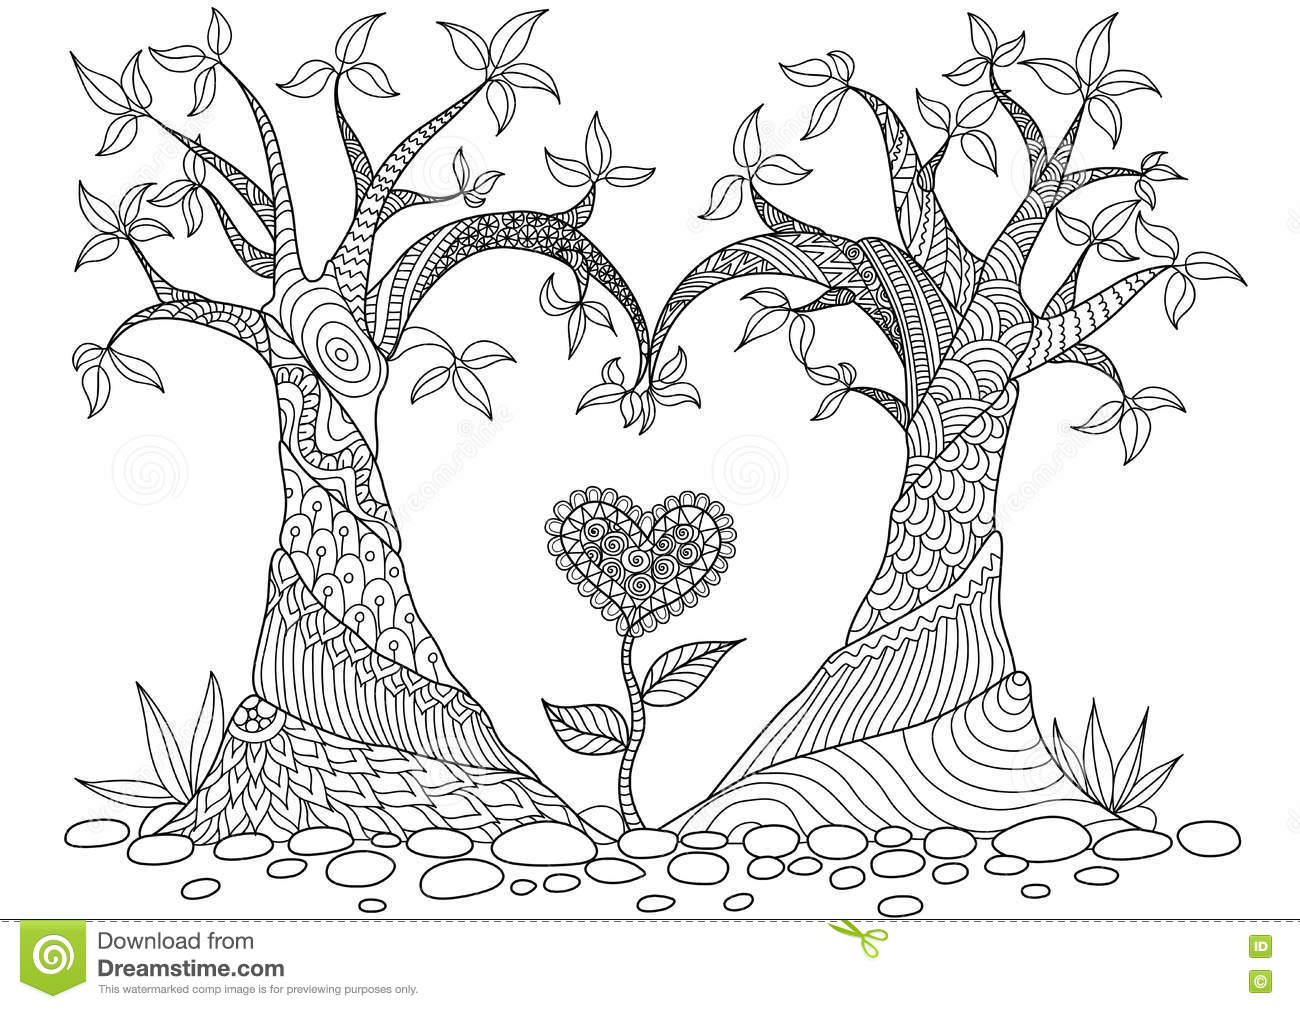 Abstract Shapes Coloring Pages : Abstract shape mandala royalty free stock photography